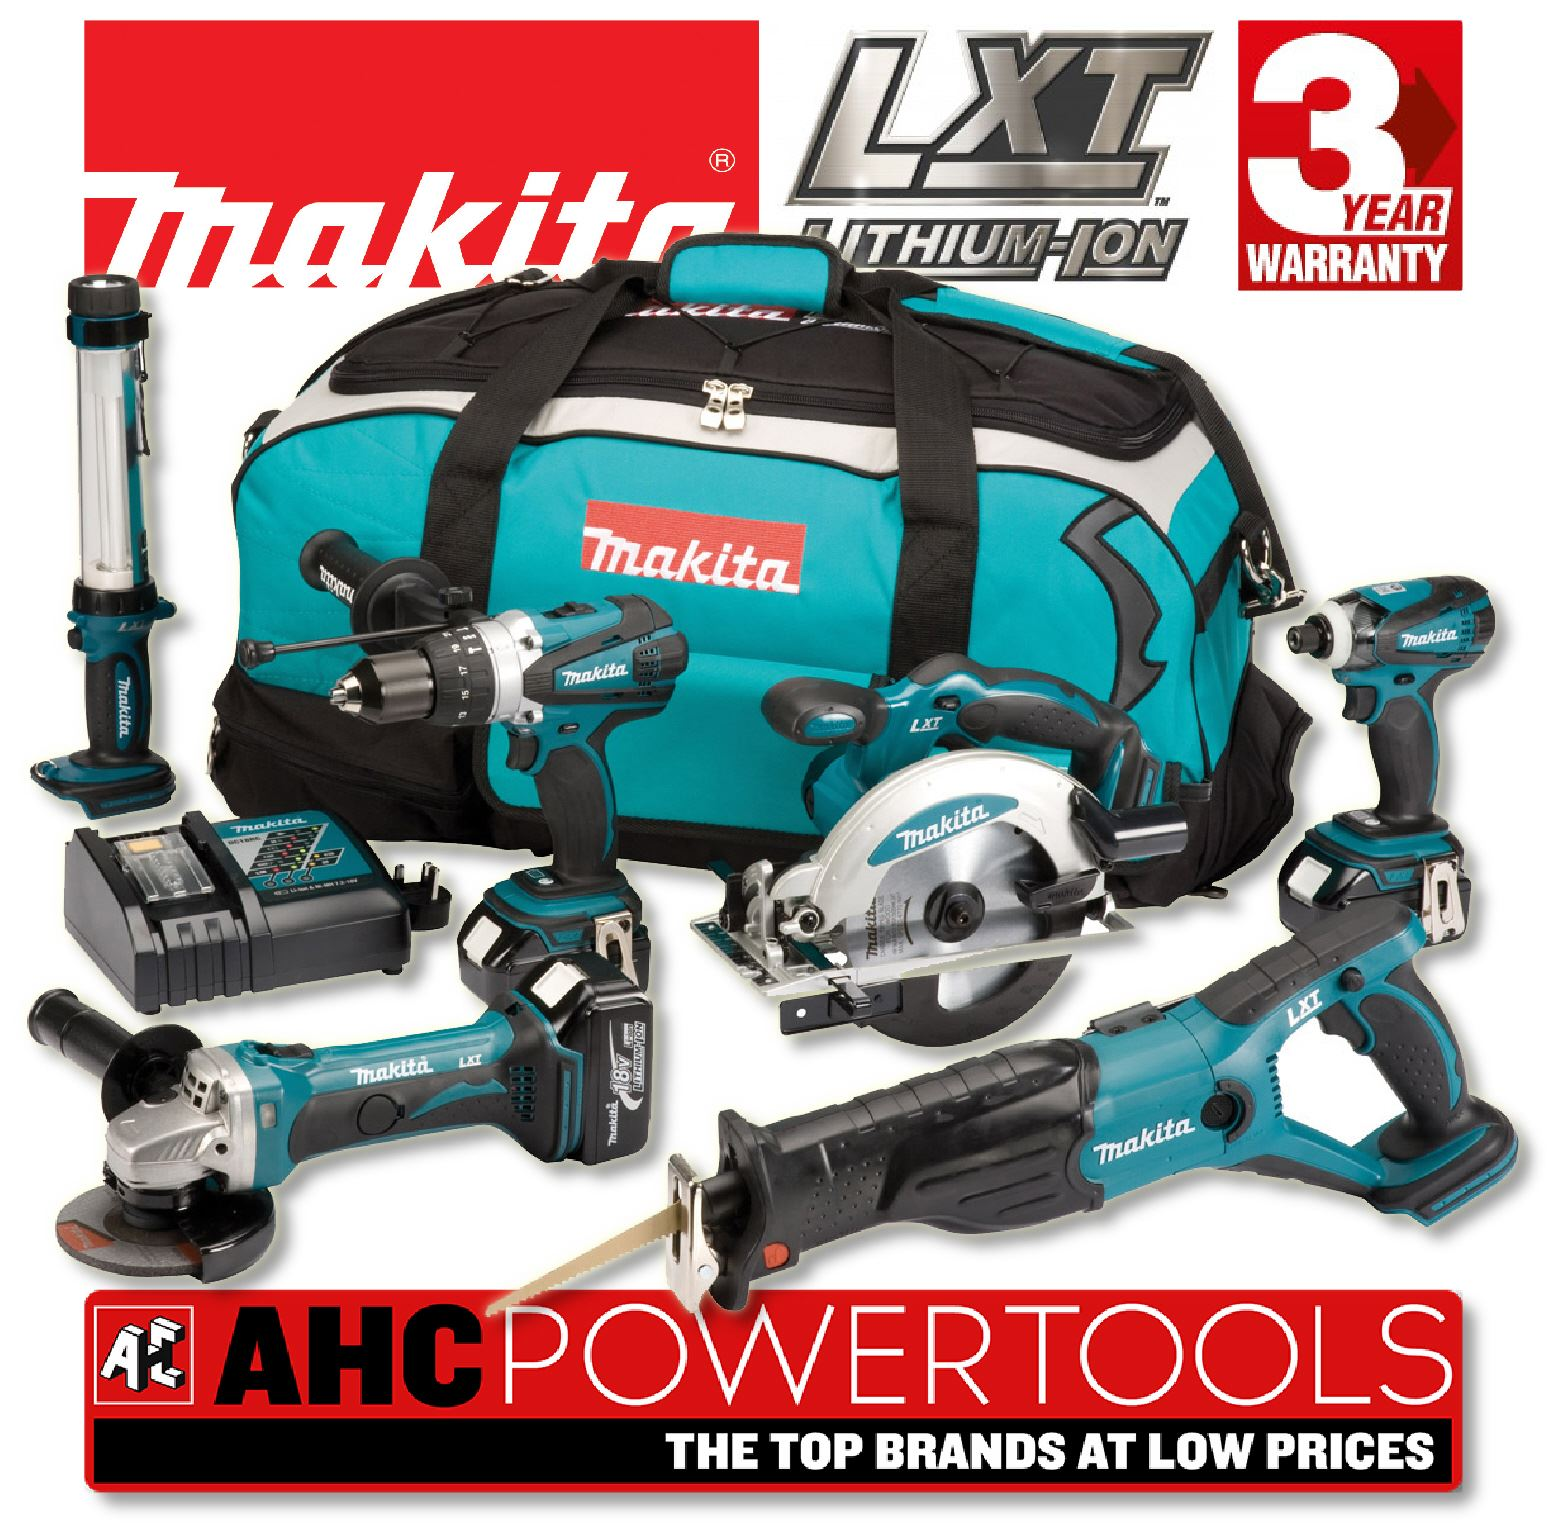 makita dlx6000m 18v lxt lithium ion 6 piece cordless kit. Black Bedroom Furniture Sets. Home Design Ideas